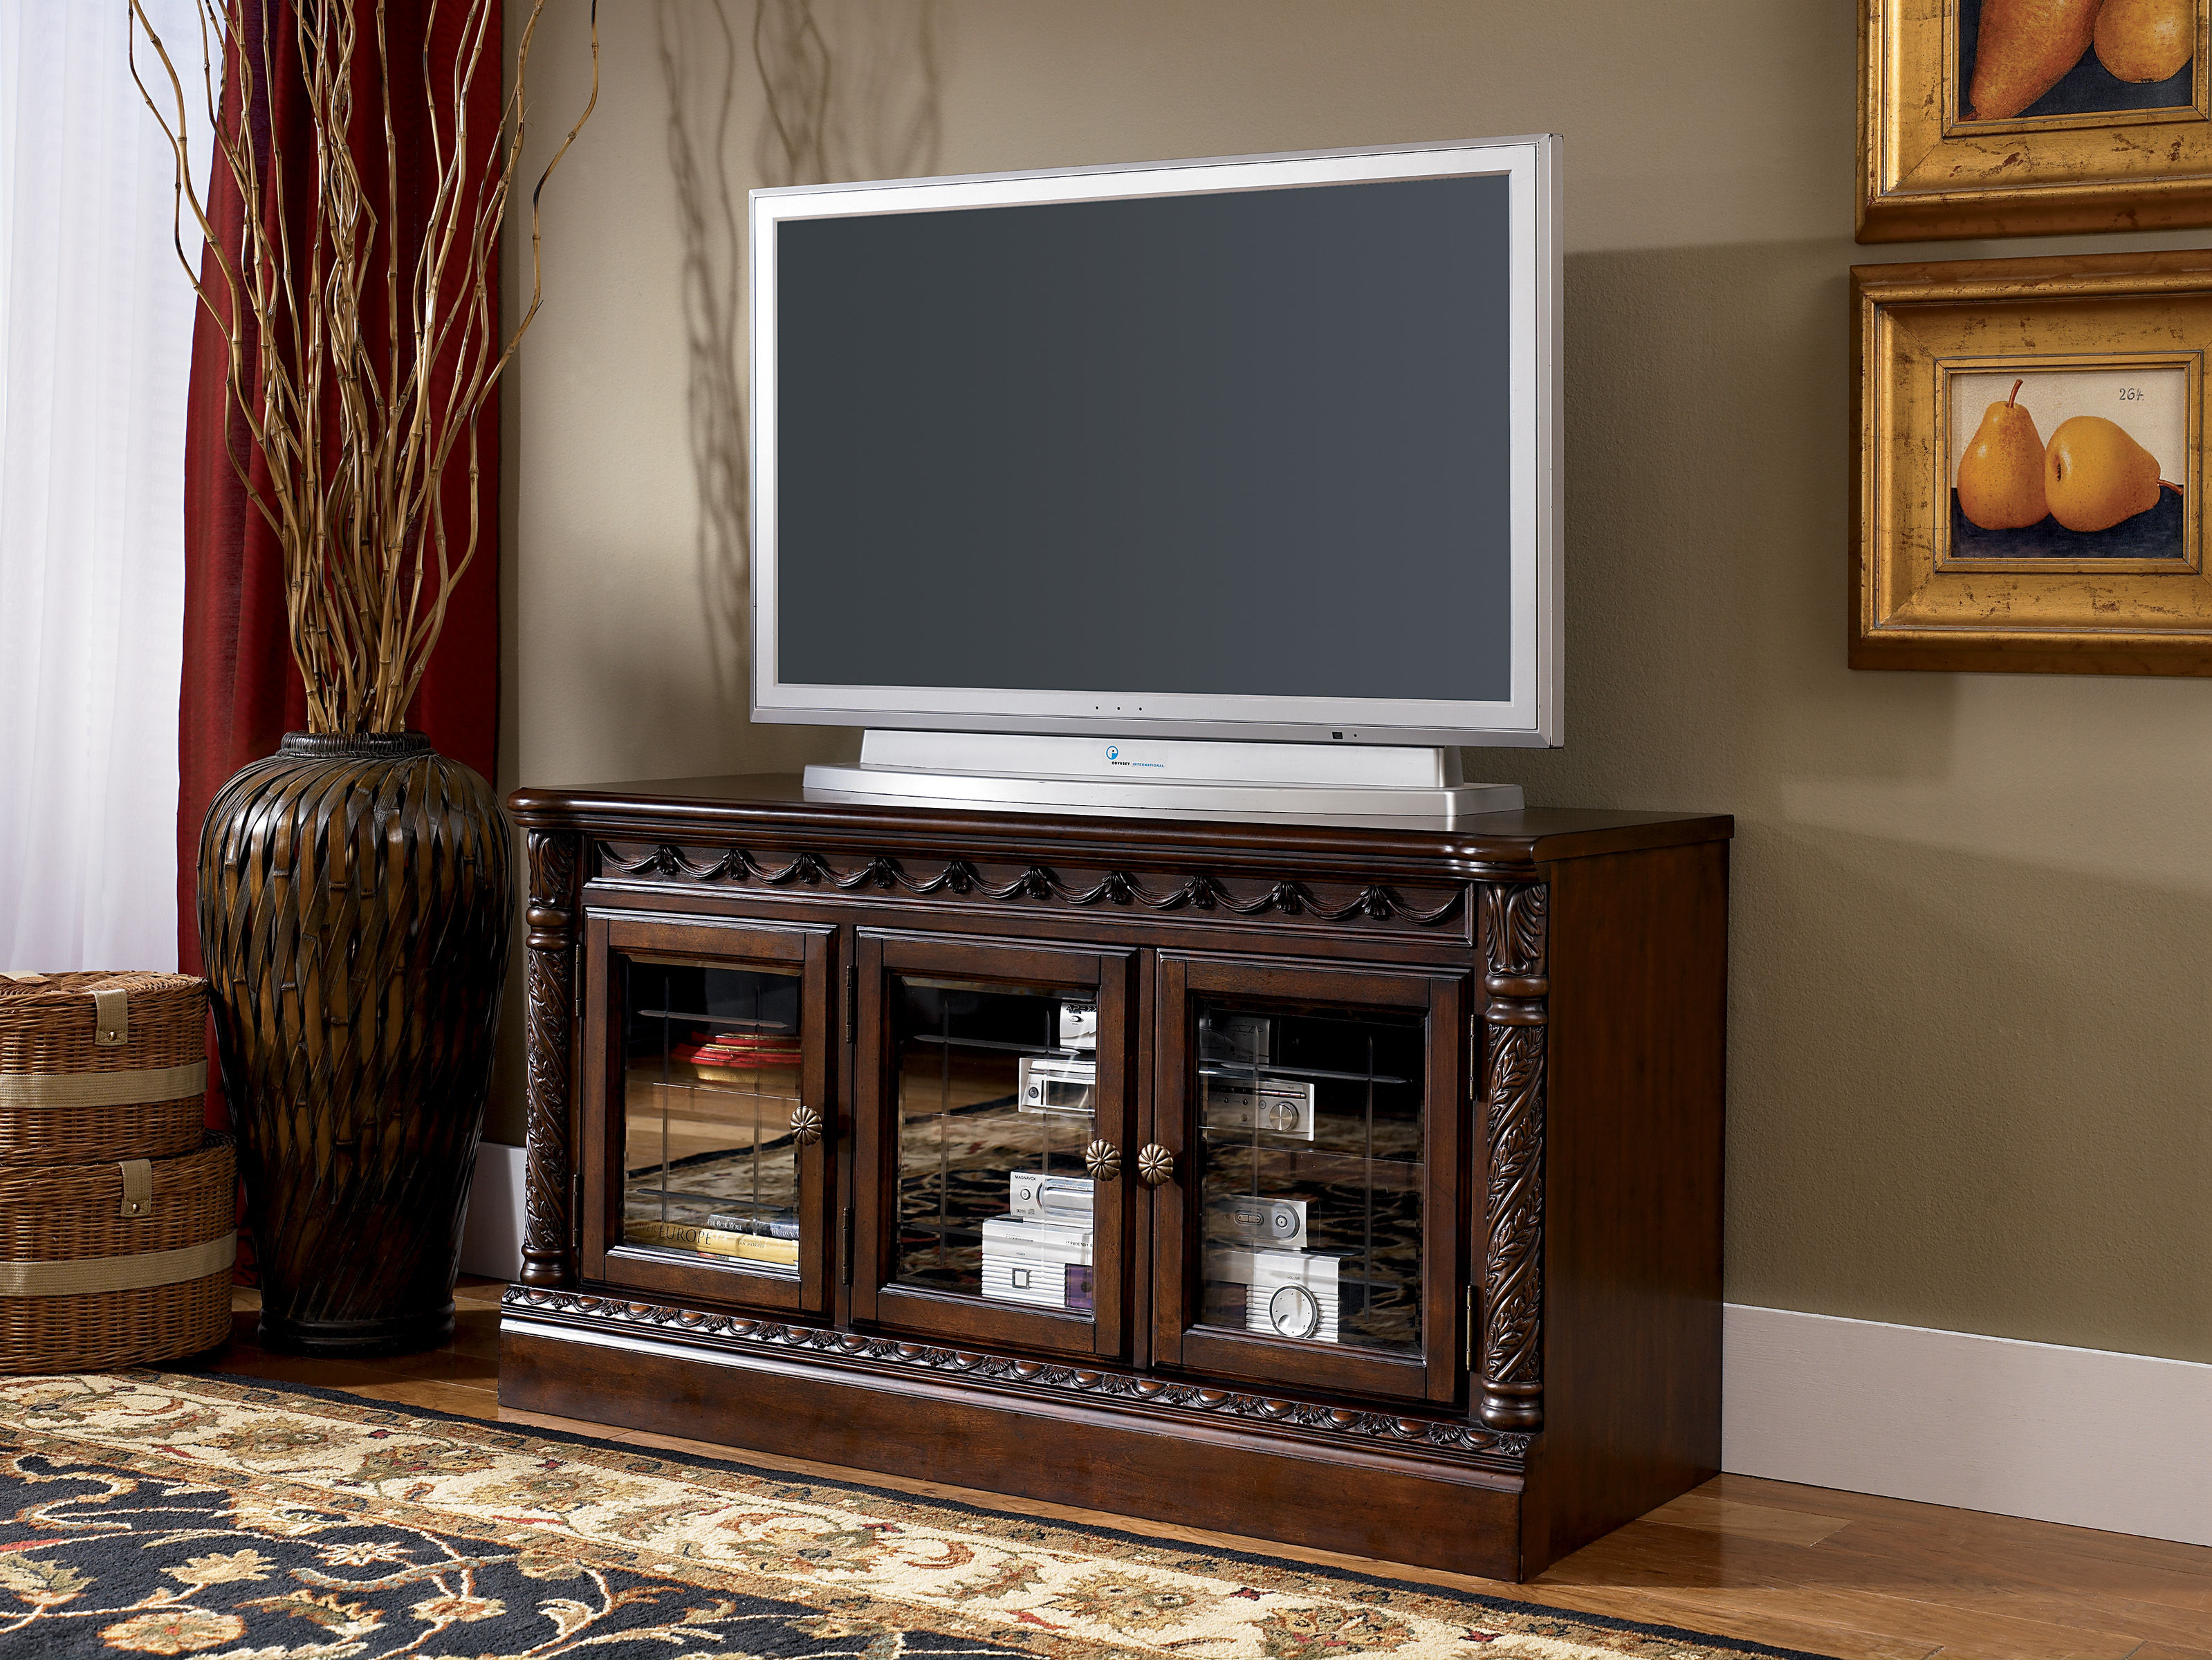 Ashley Furniture North Shore Narrow Tv Stand The Classy Home